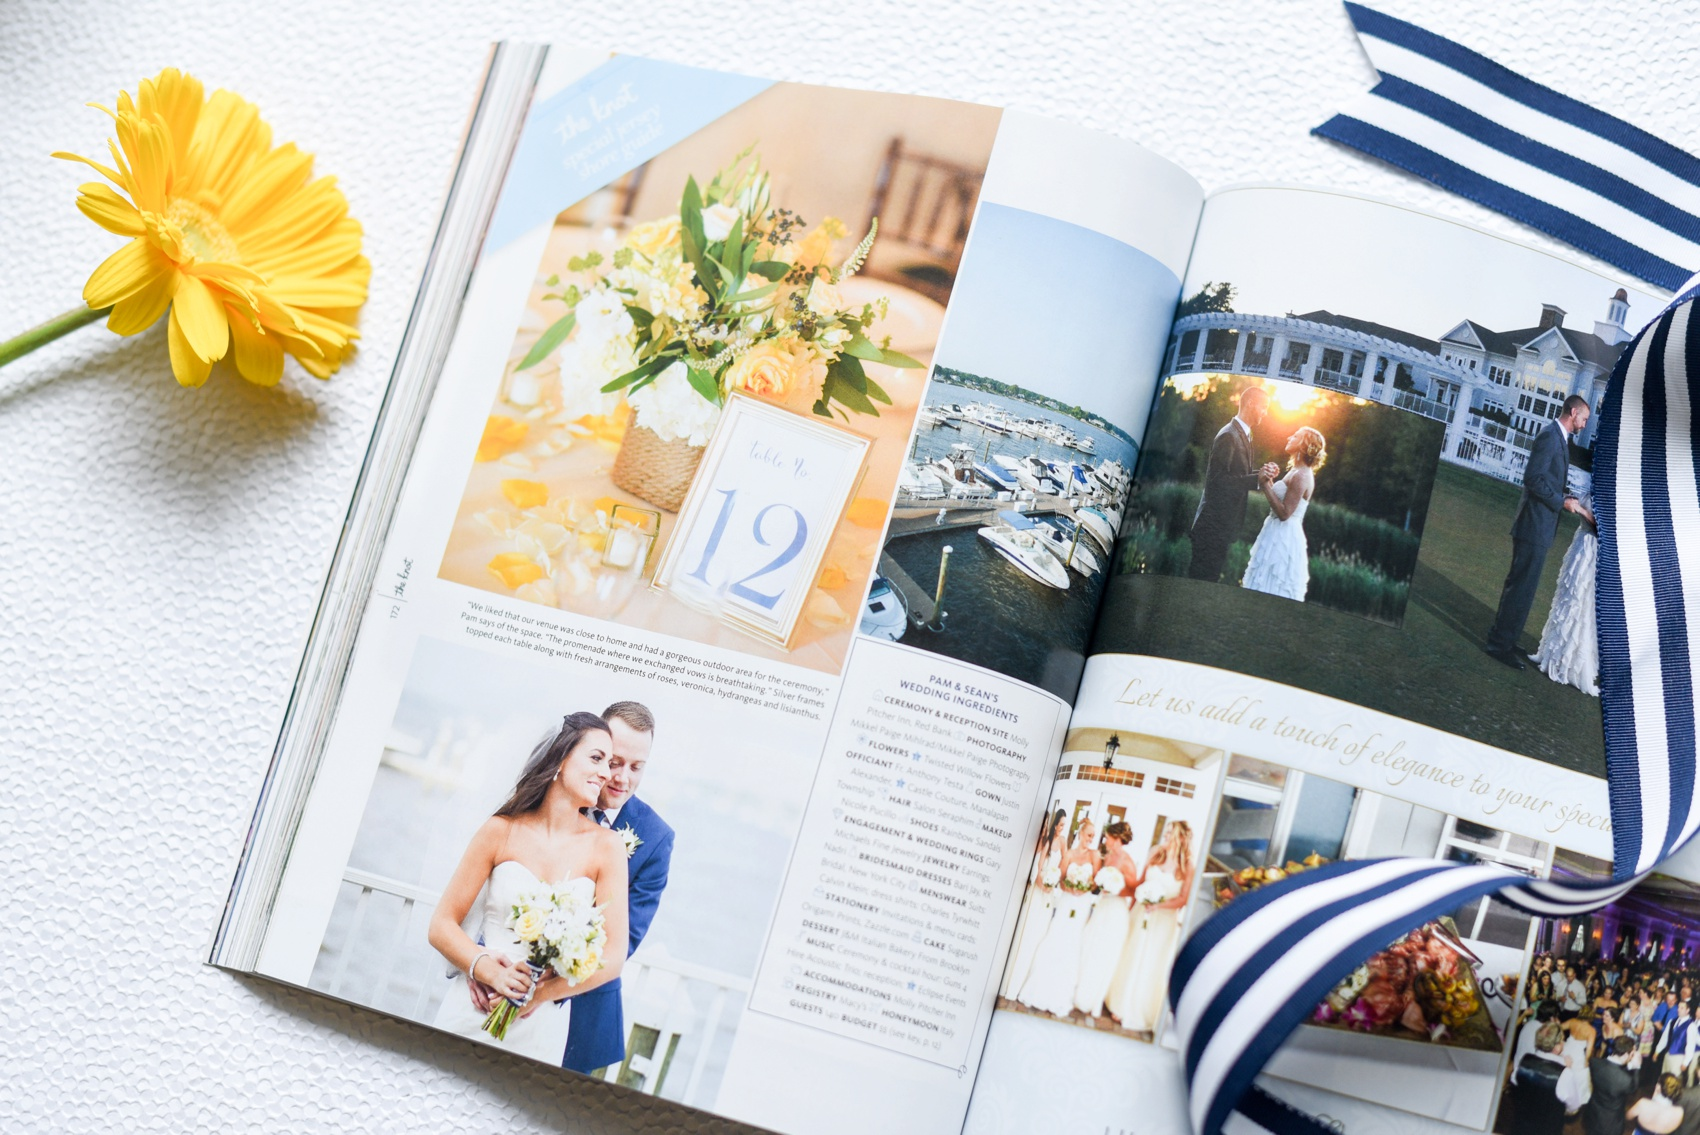 Featured: The Knot New Jersey • Molly Pitcher Inn • Pam +